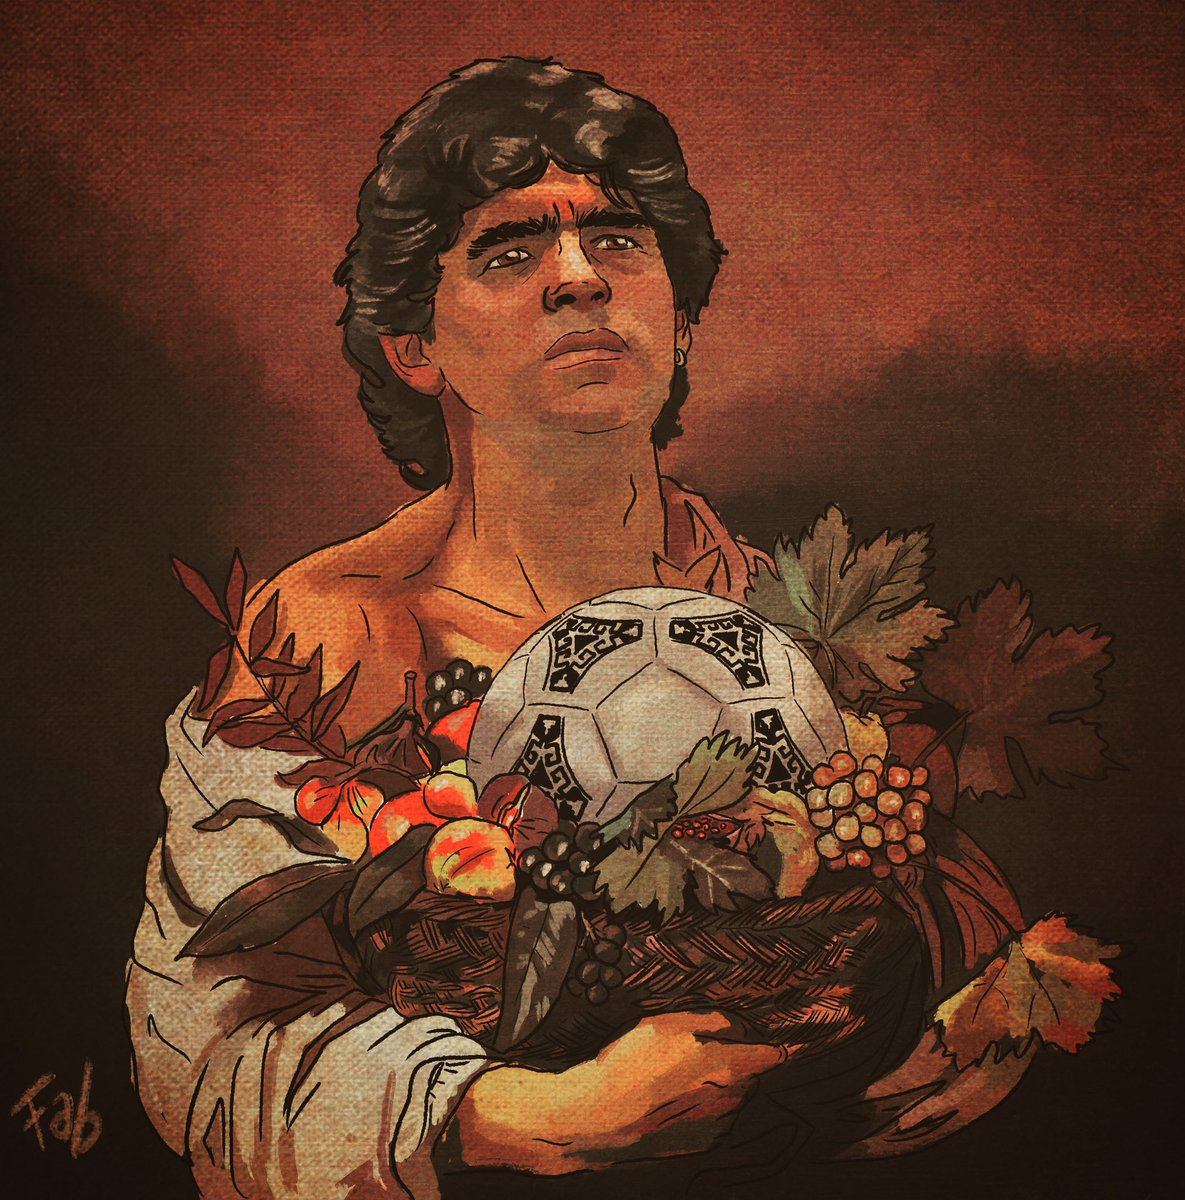 When Art meets Football. A young Diego Maradona painted by Caravaggio. #diego #d10s #footballart https://t.co/UDeDIE8MZo